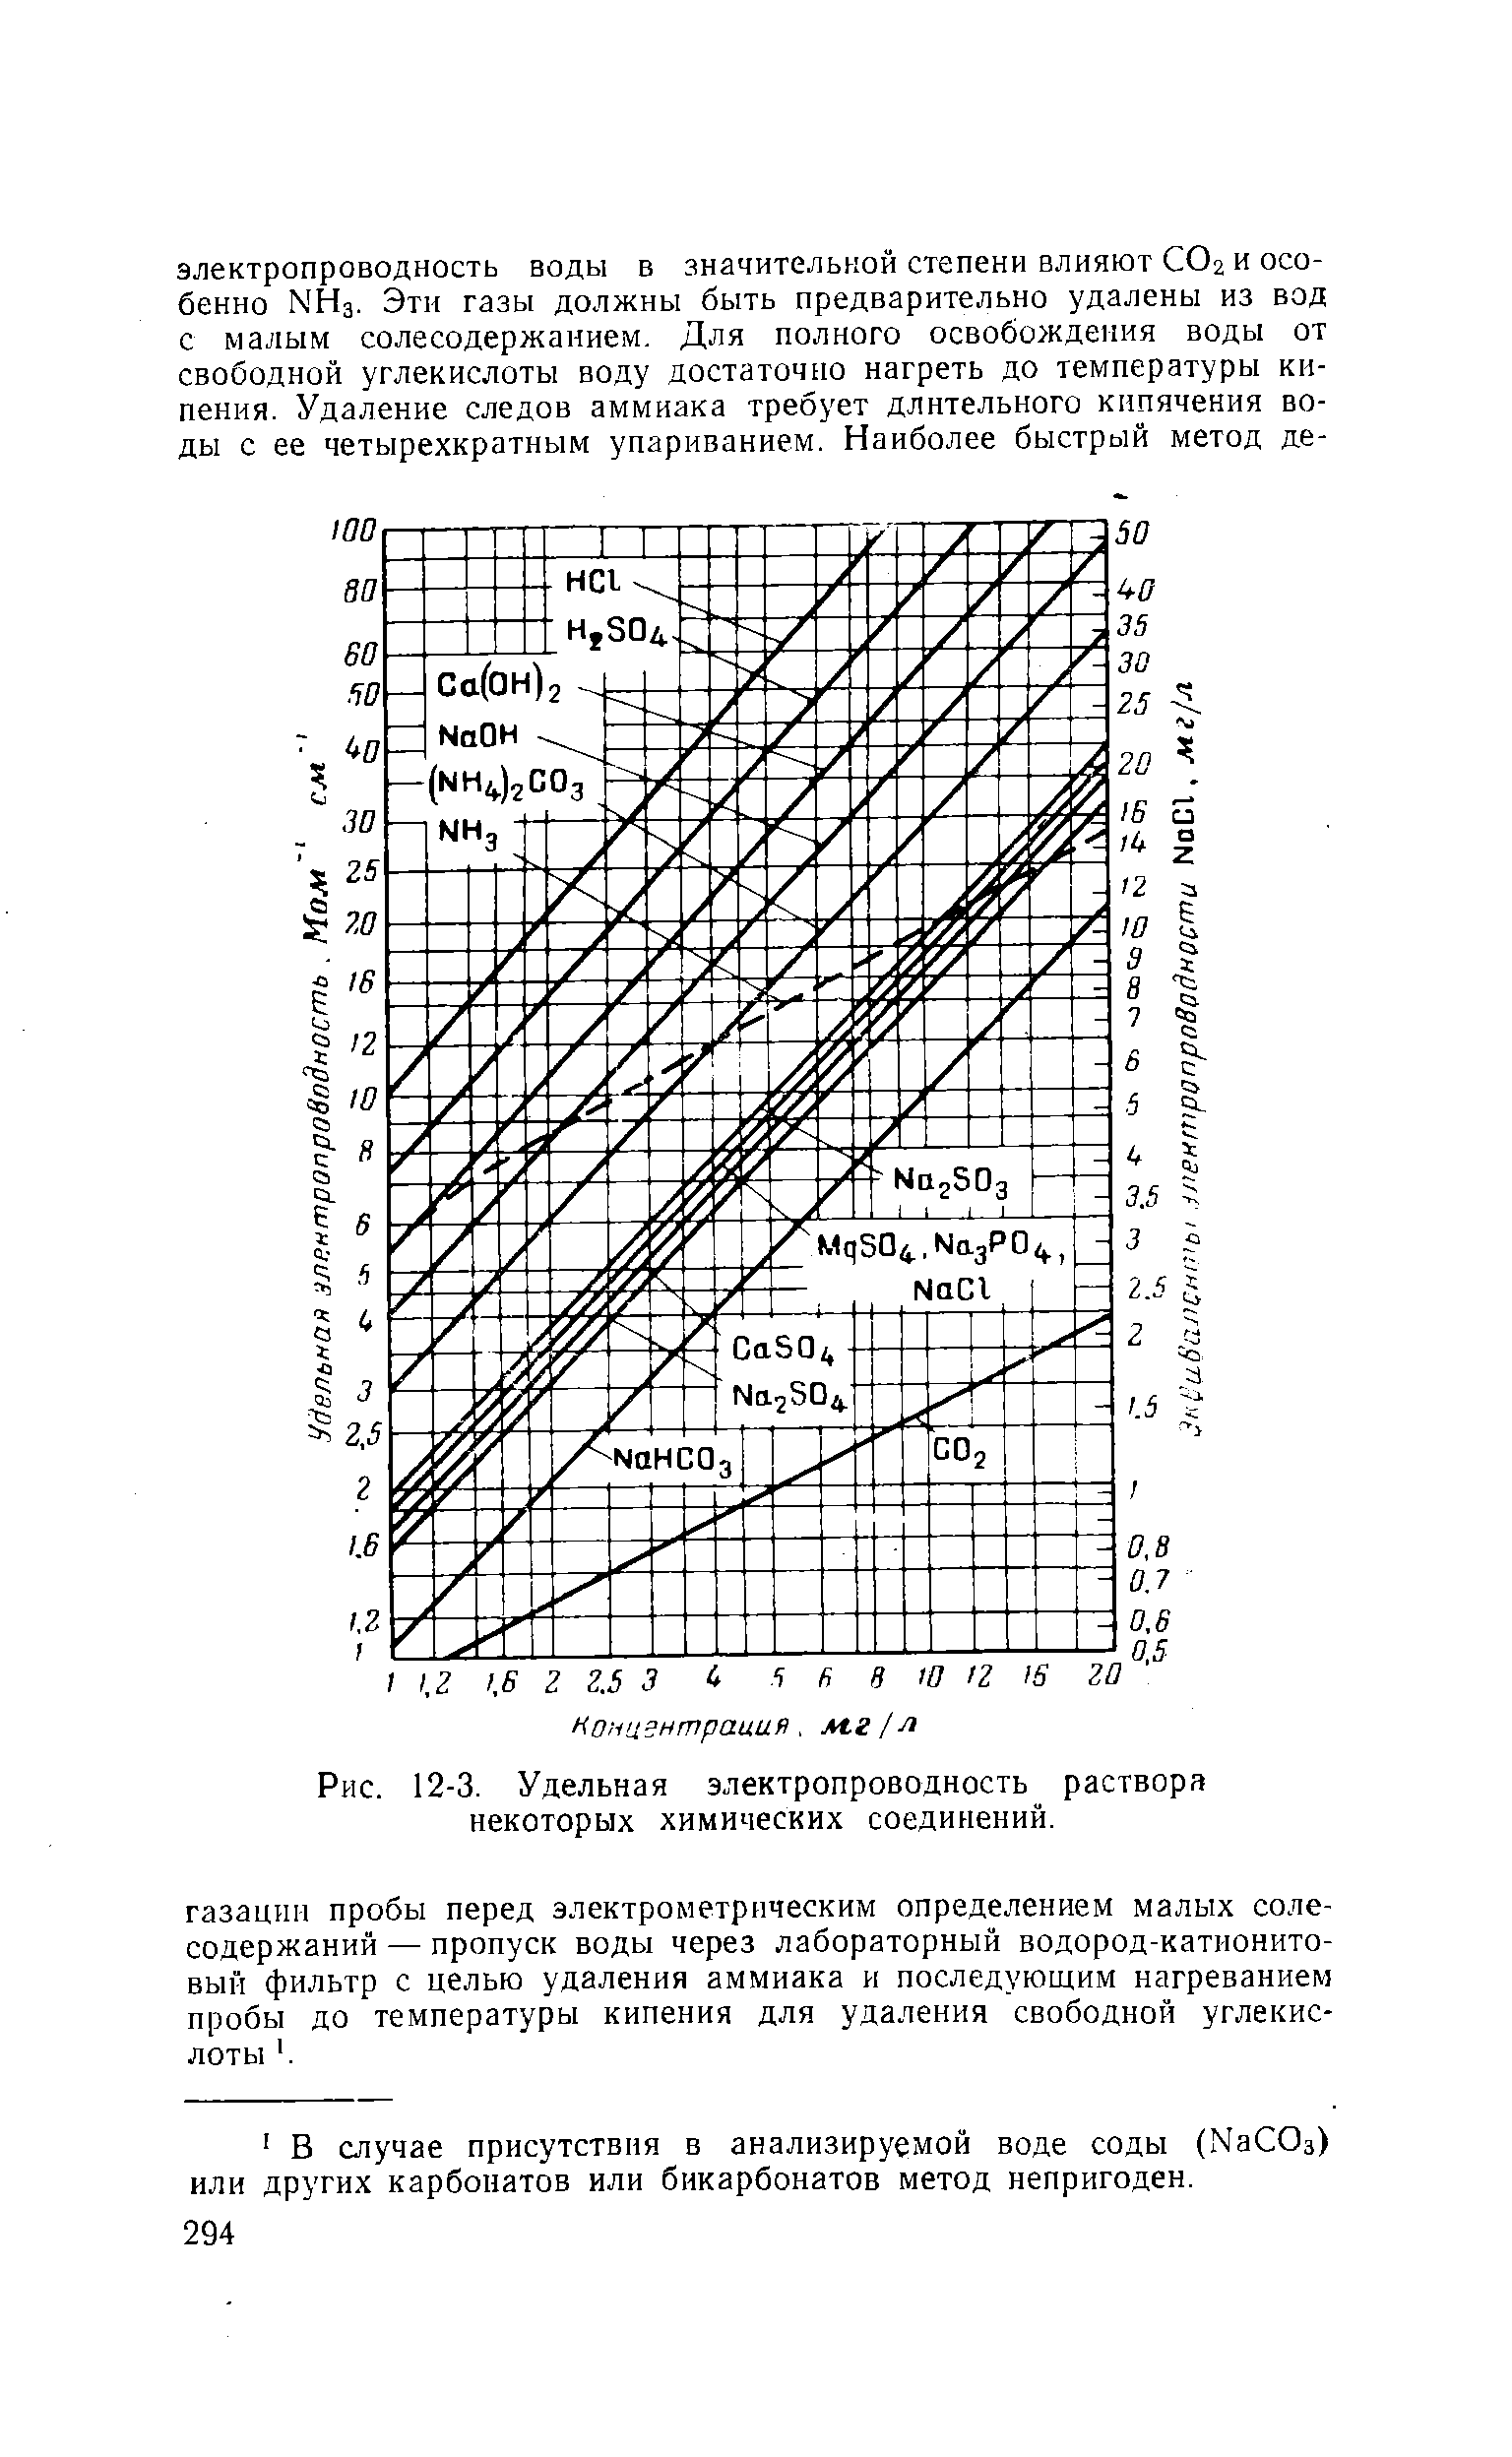 044095228214013065053102057224173088044197212126.png